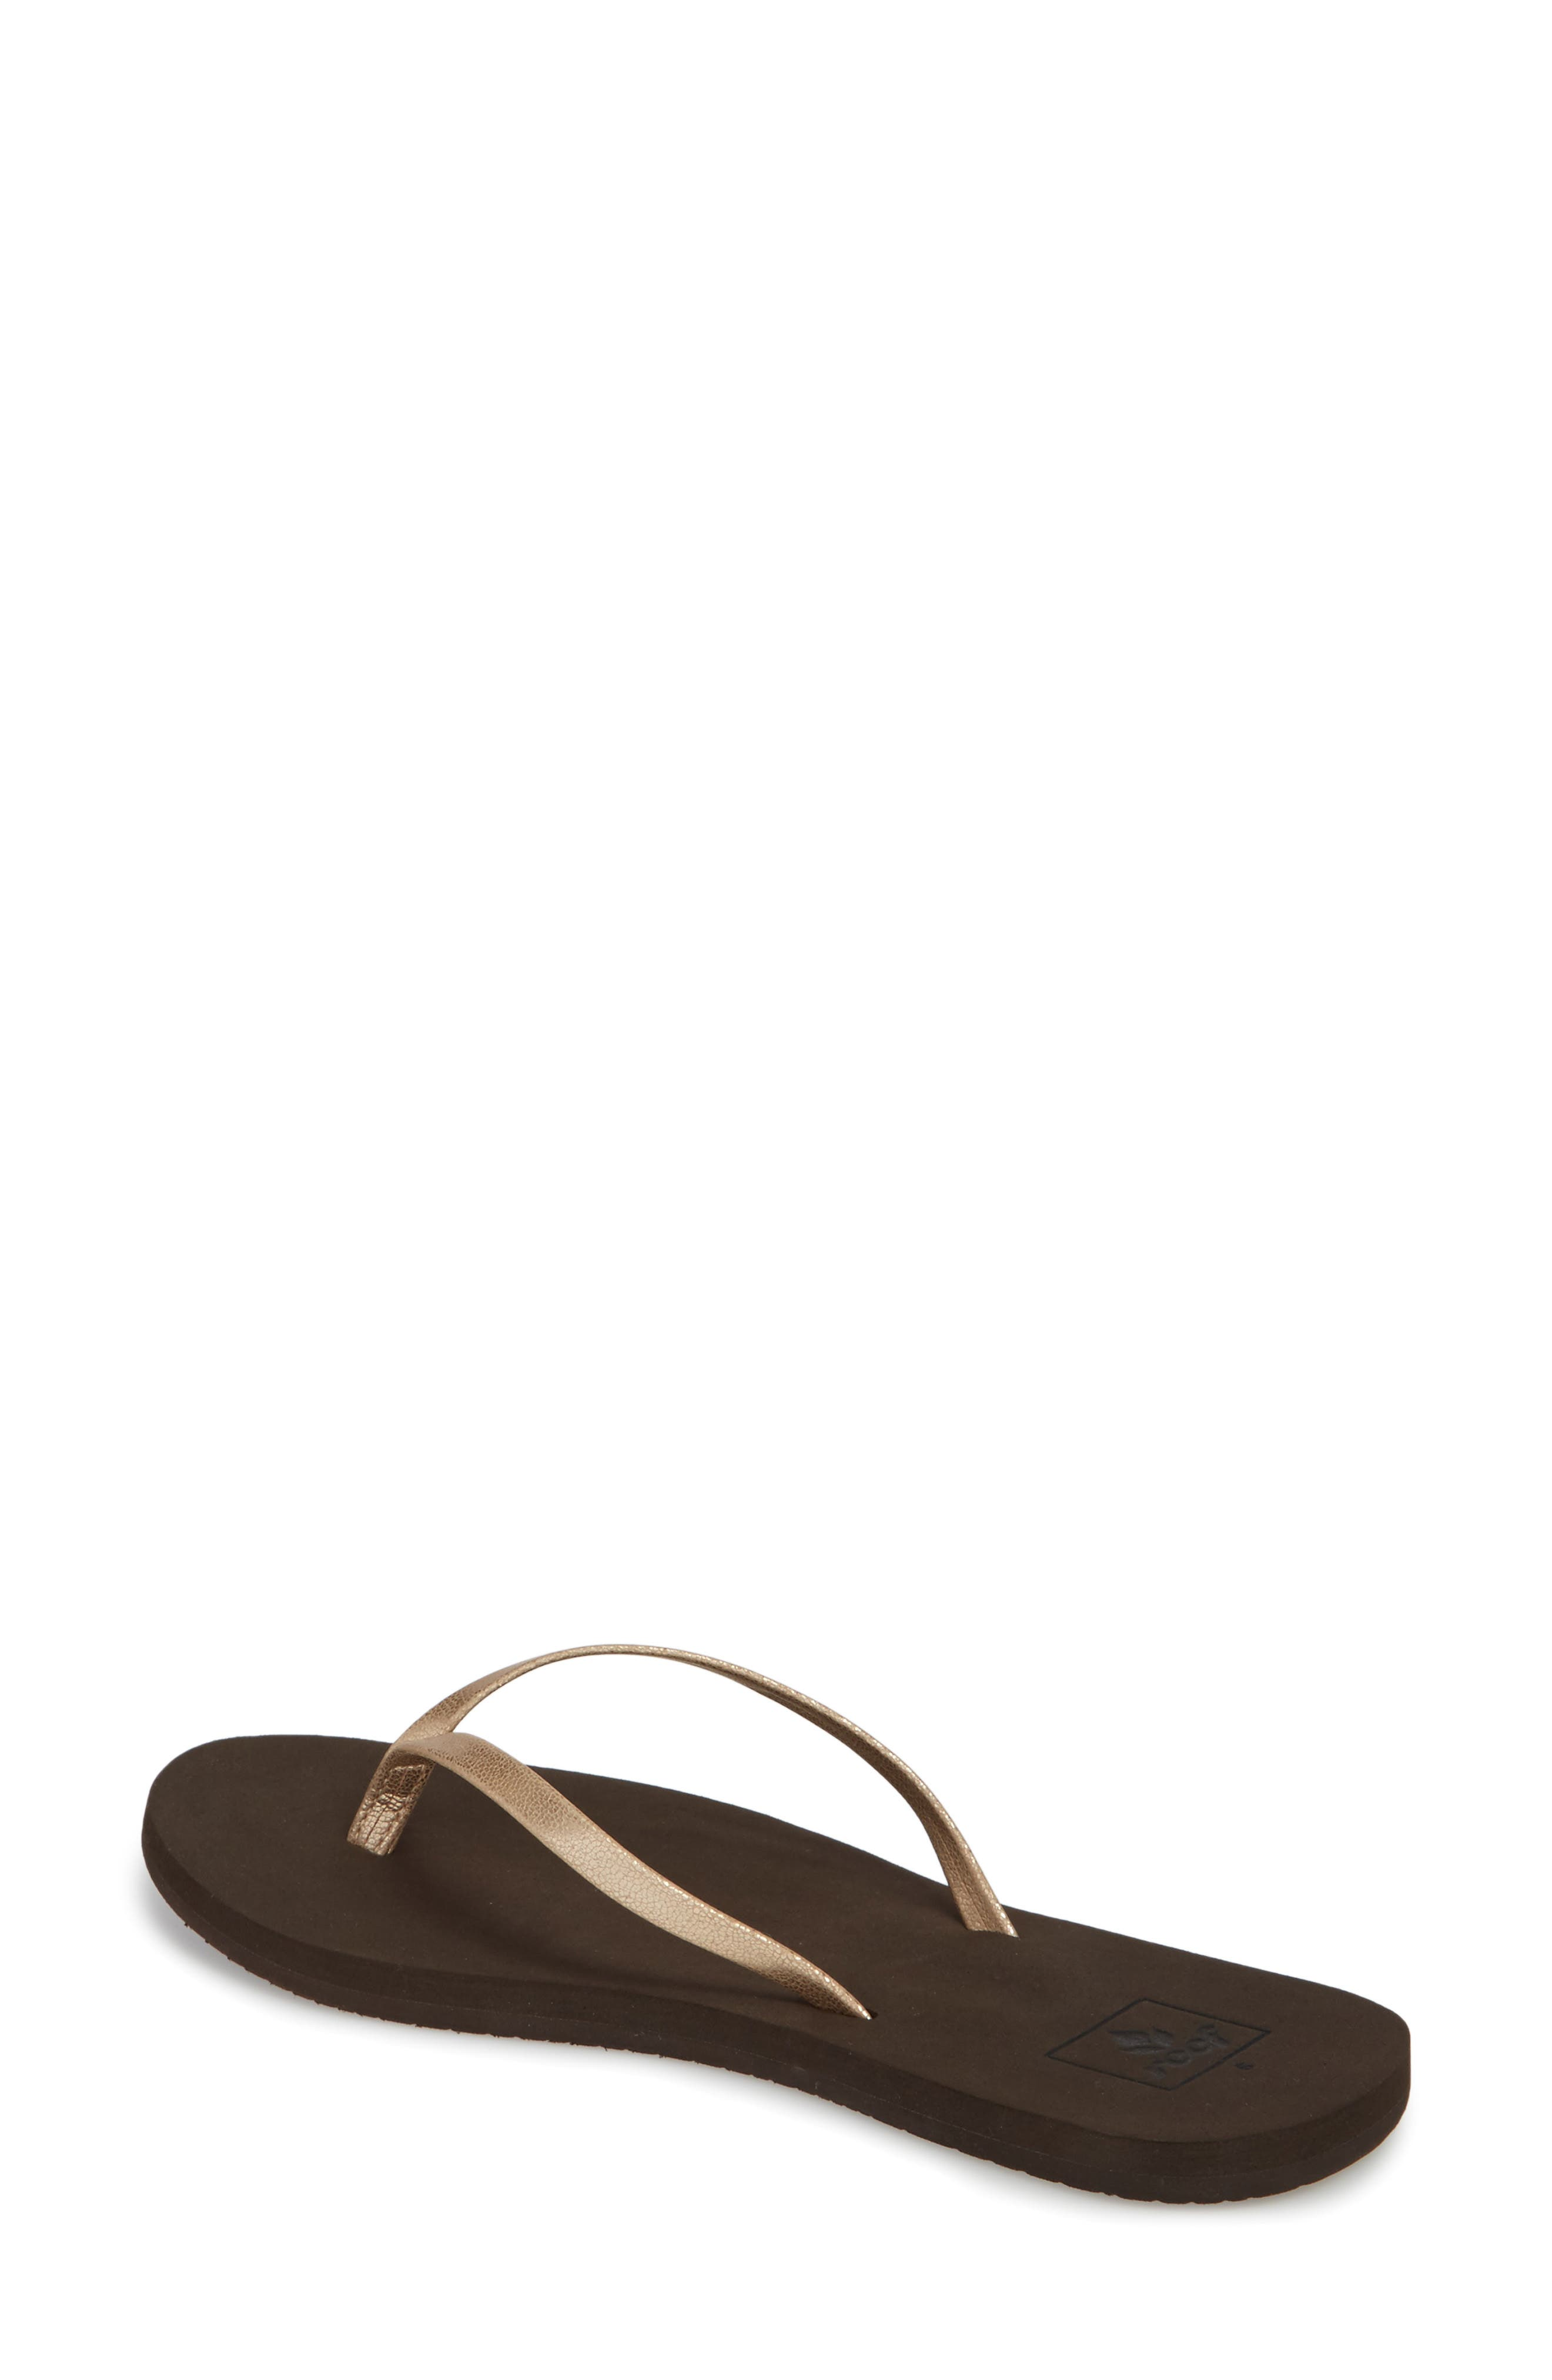 Bliss Nights Flip Flop,                             Alternate thumbnail 5, color,